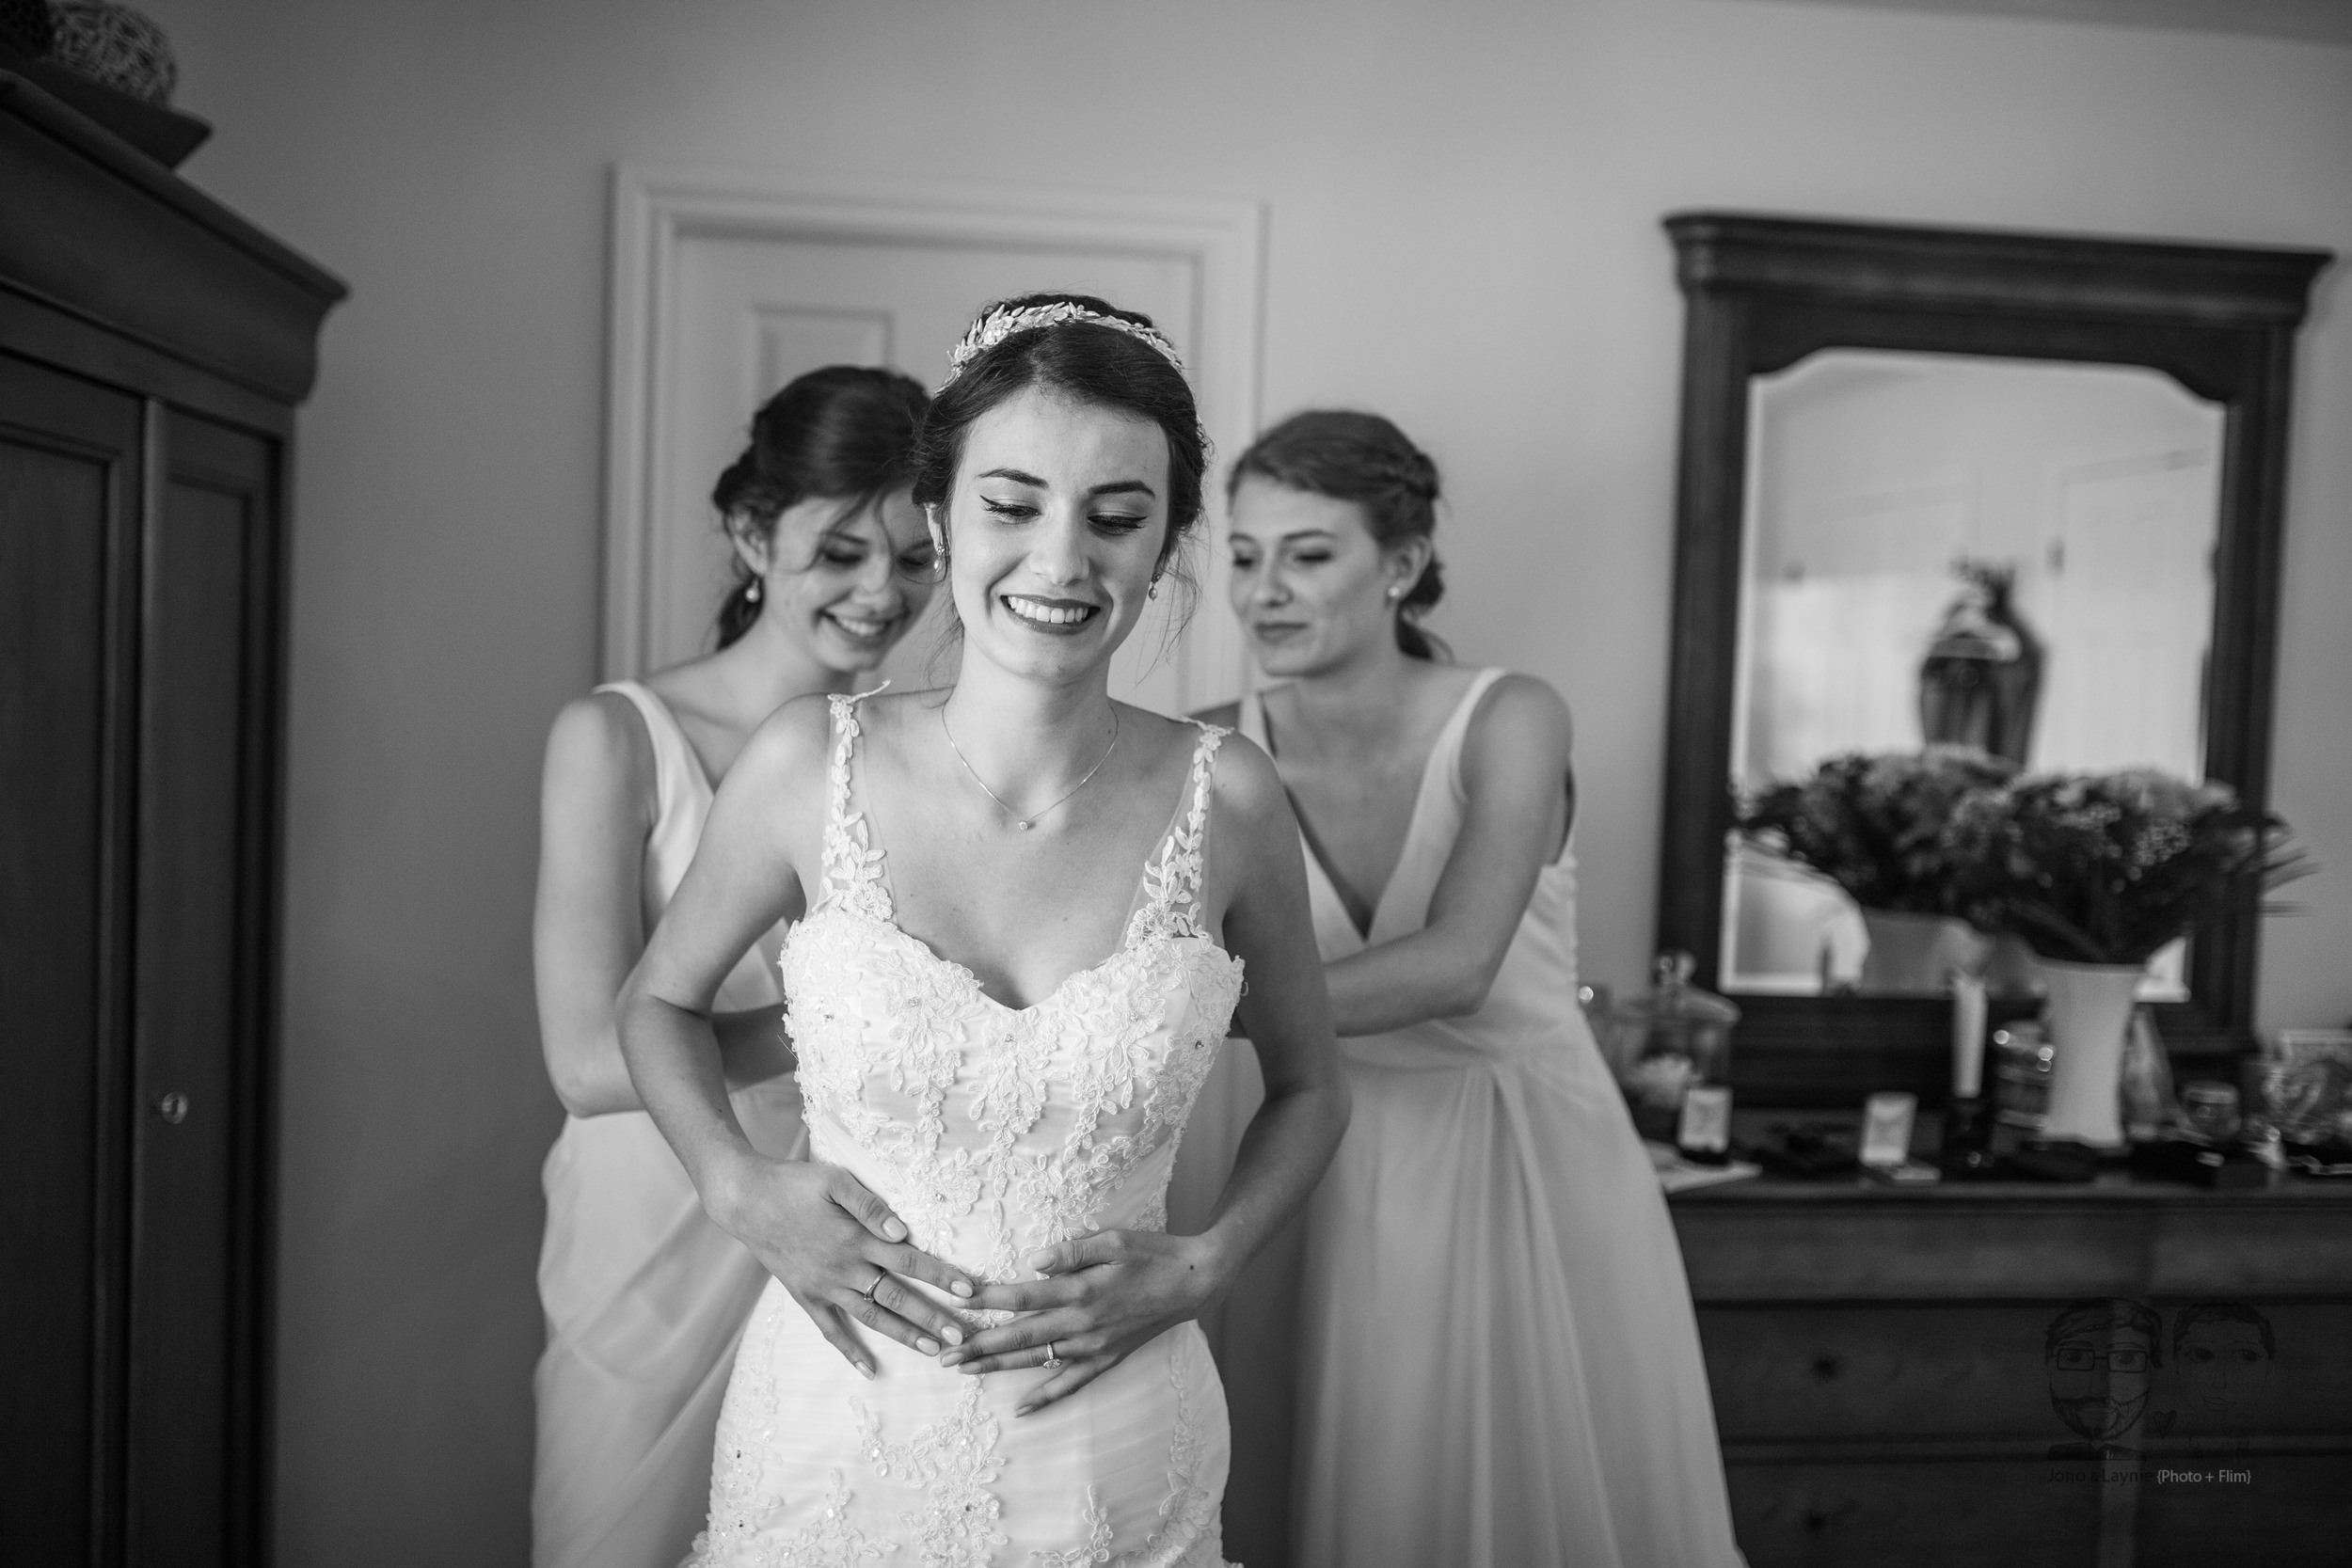 016Toronto Wedding Photographers and Videographers-Jono & Laynie Co.jpg